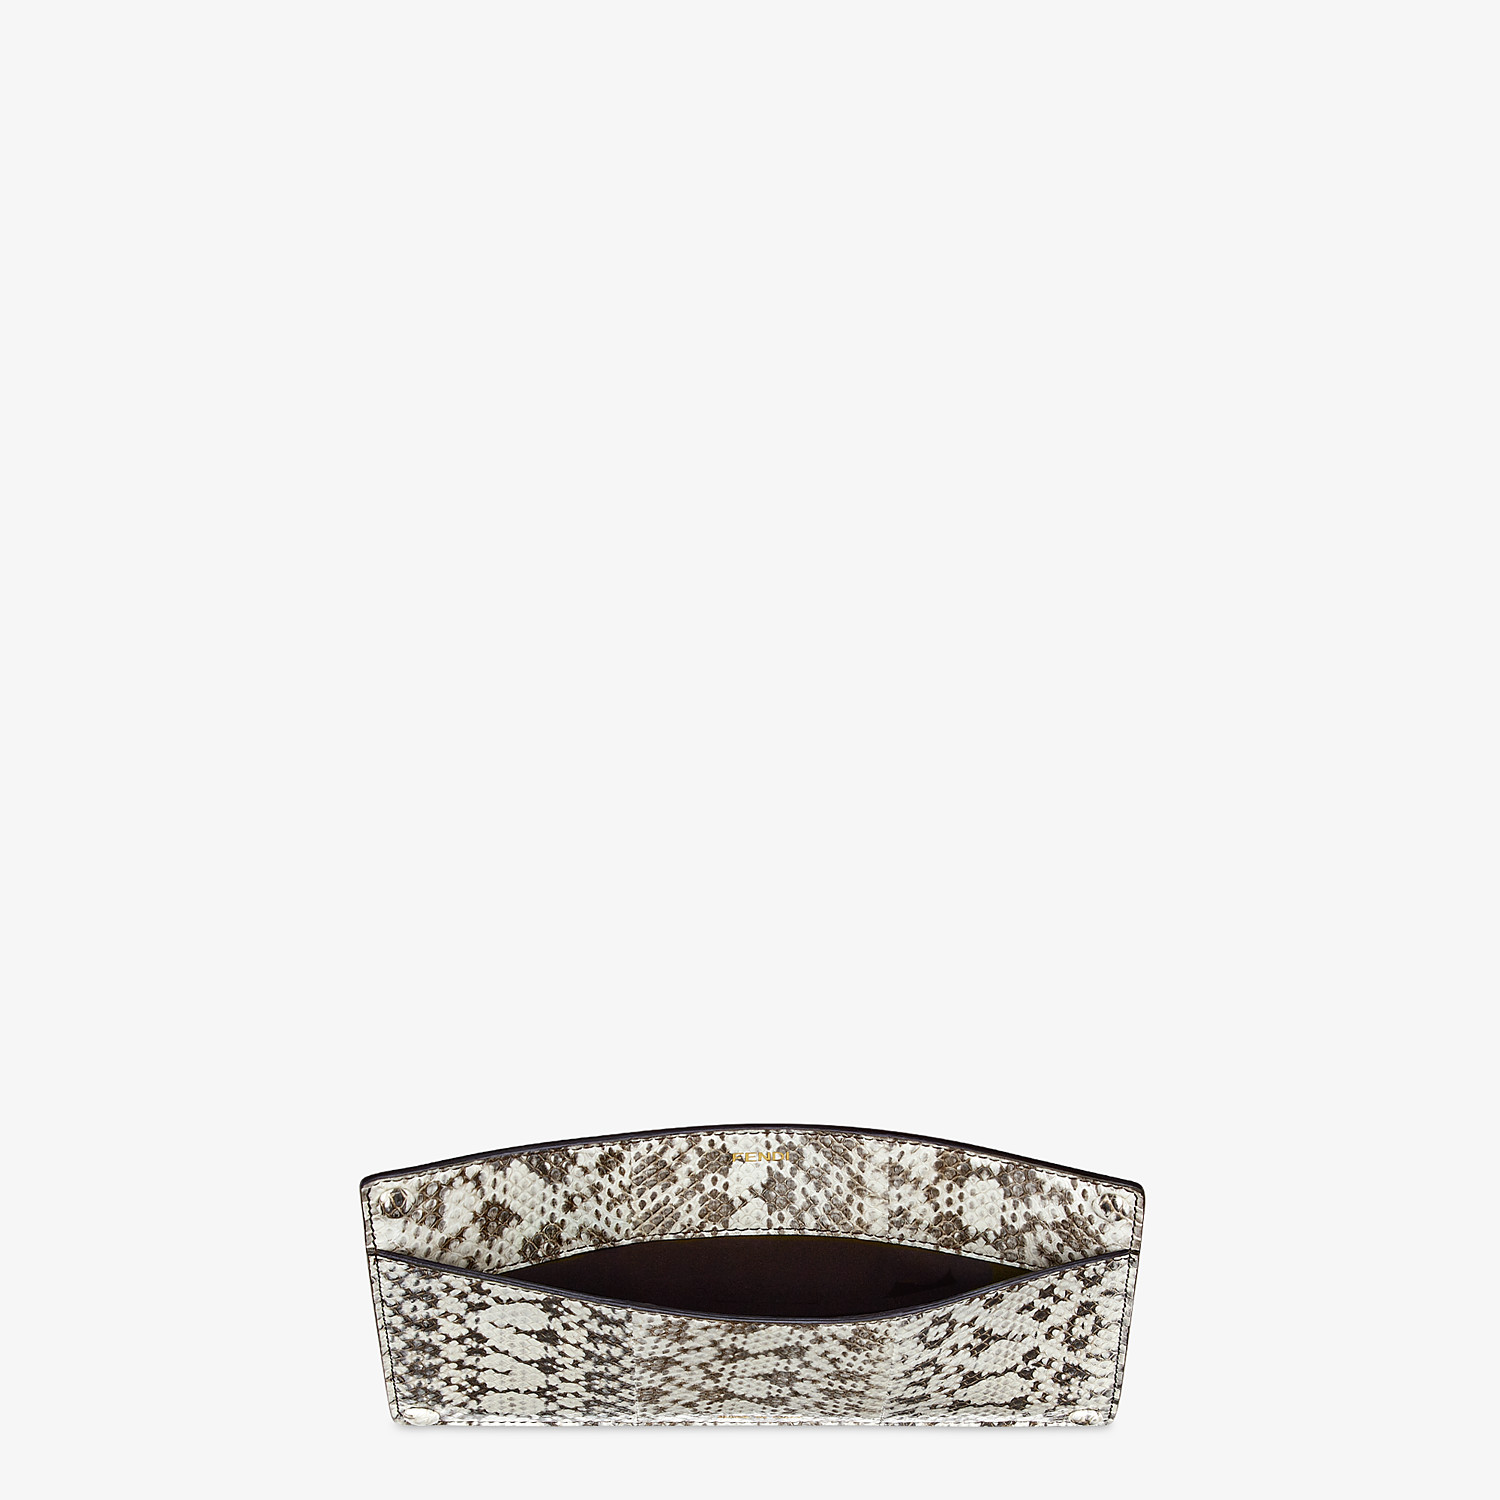 FENDI PEEKABOO ISEEU POCKET - Accessory pocket in natural elaphe - view 3 detail